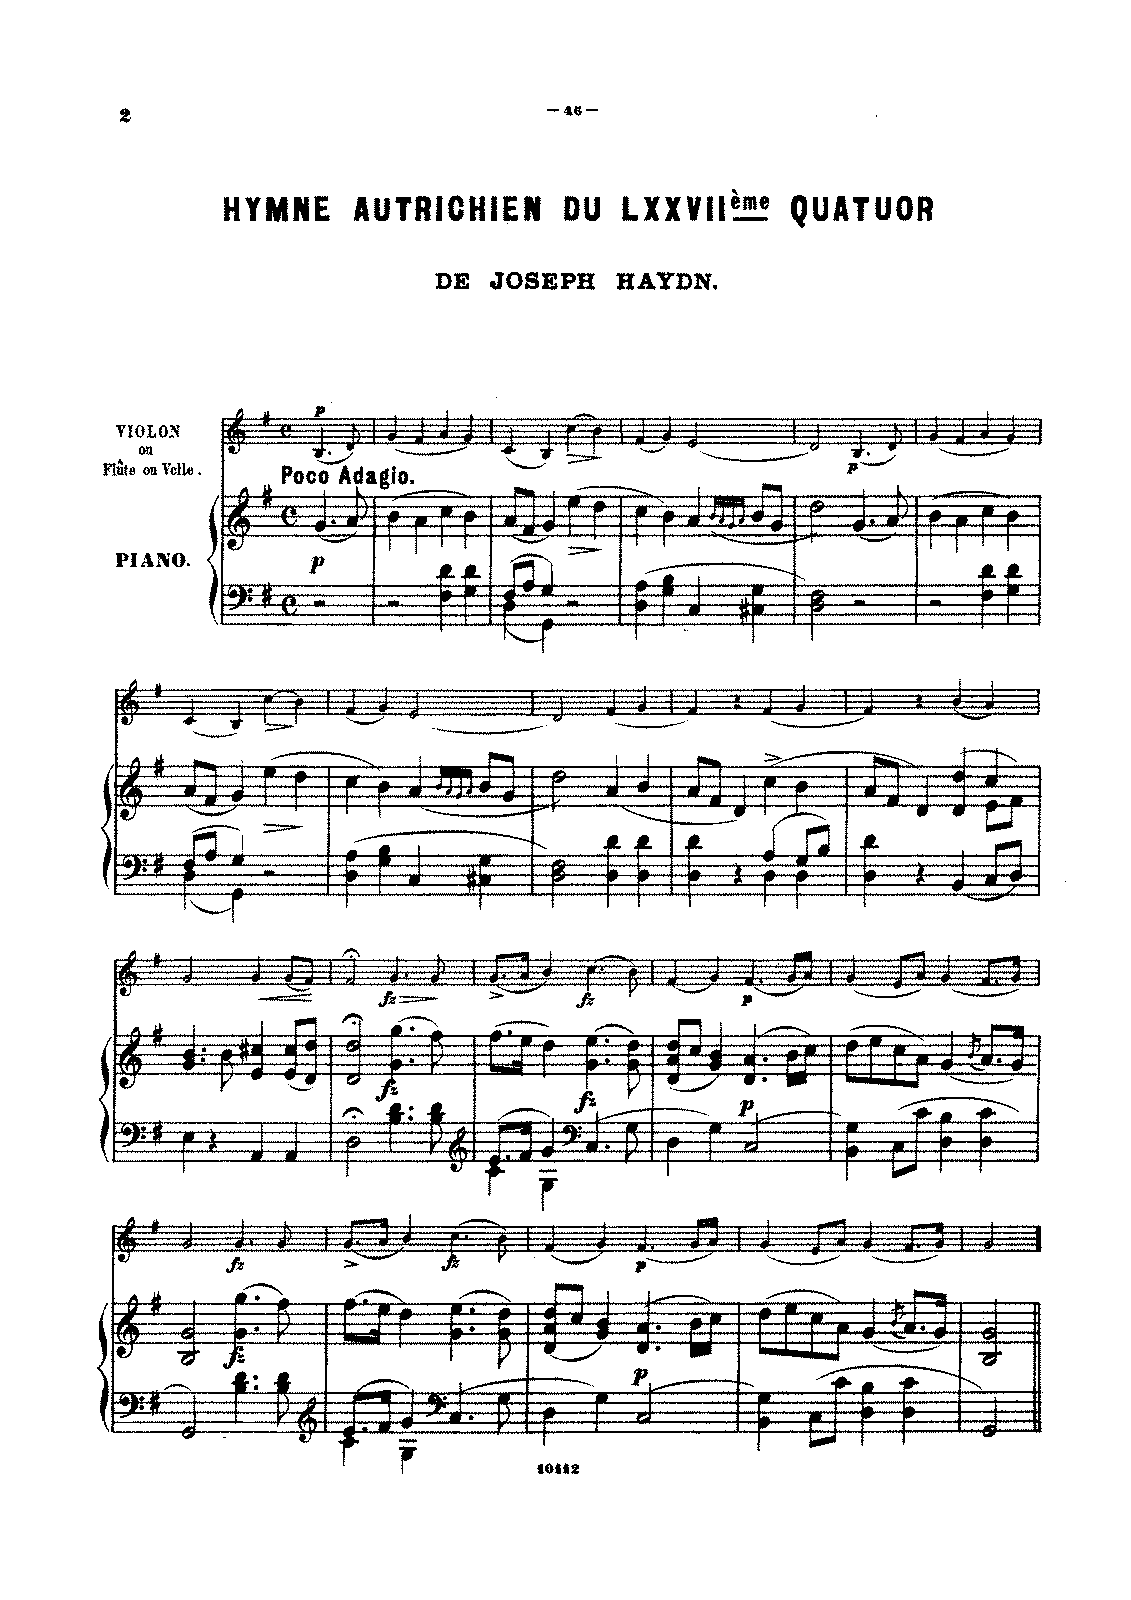 PMLP57211-Haydn - Autrichien Hymne from Quartet No77 for Cello and Piano score.pdf